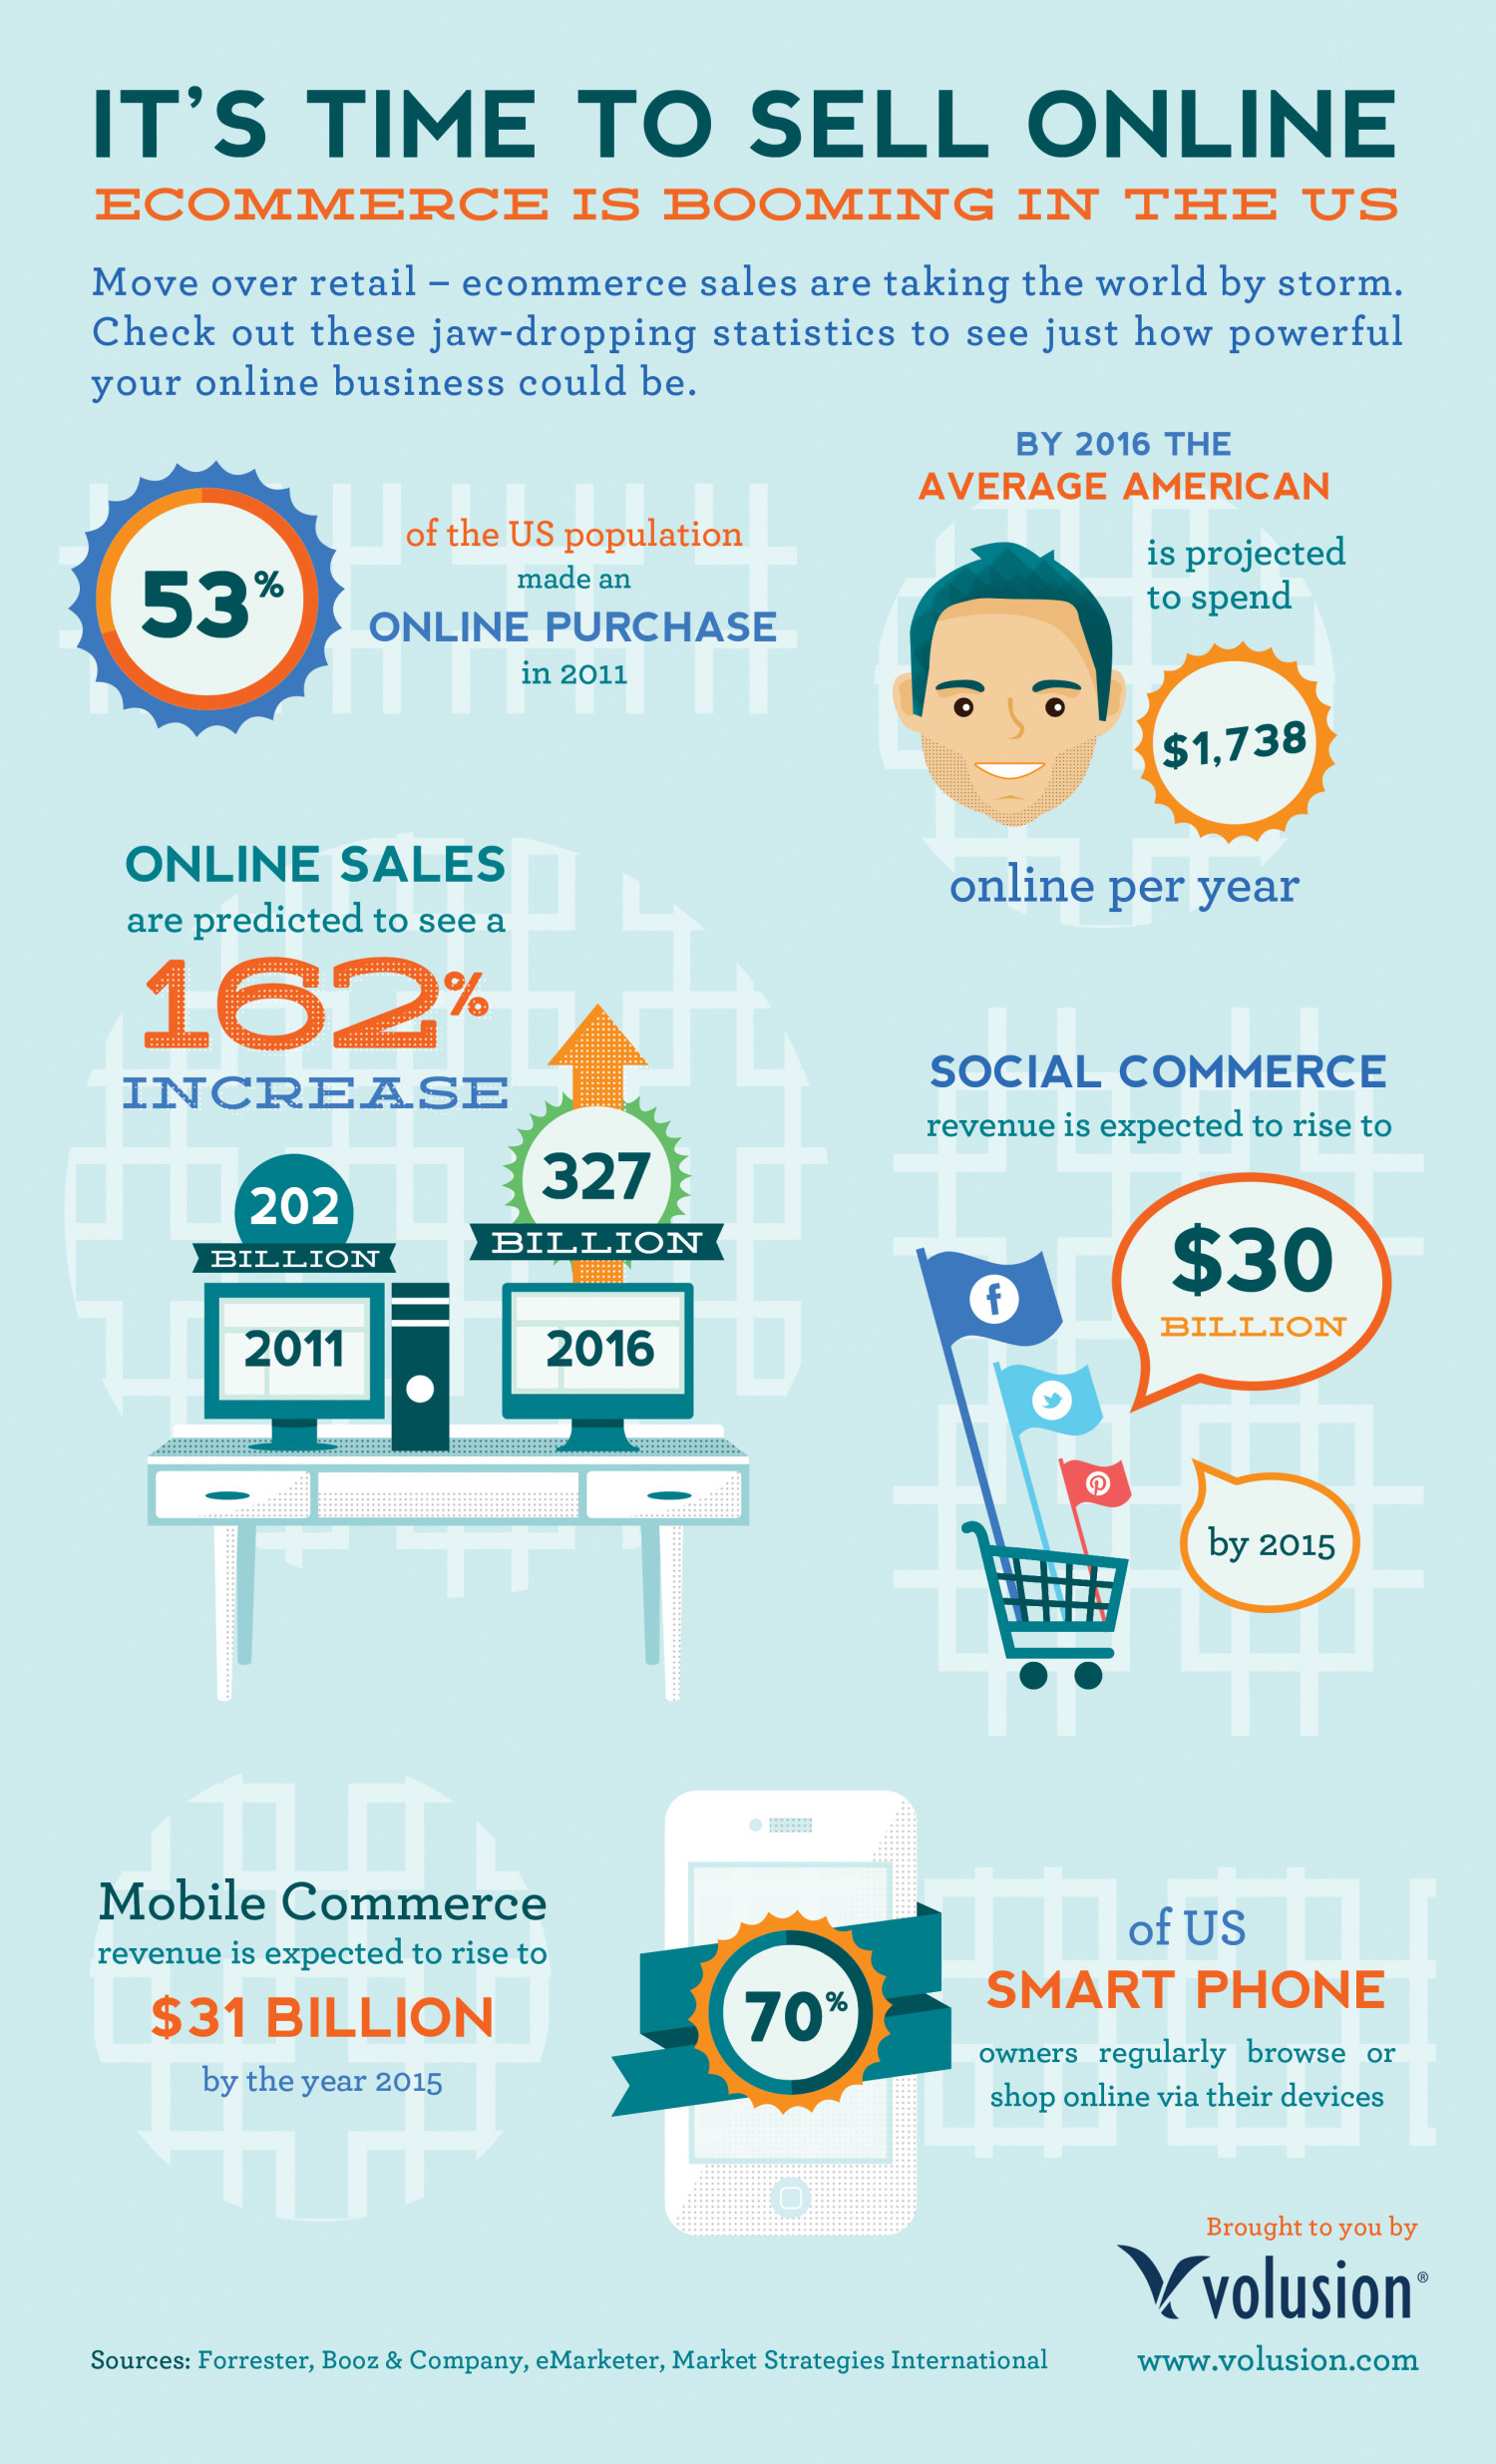 It's Time to Sell Online Infographic